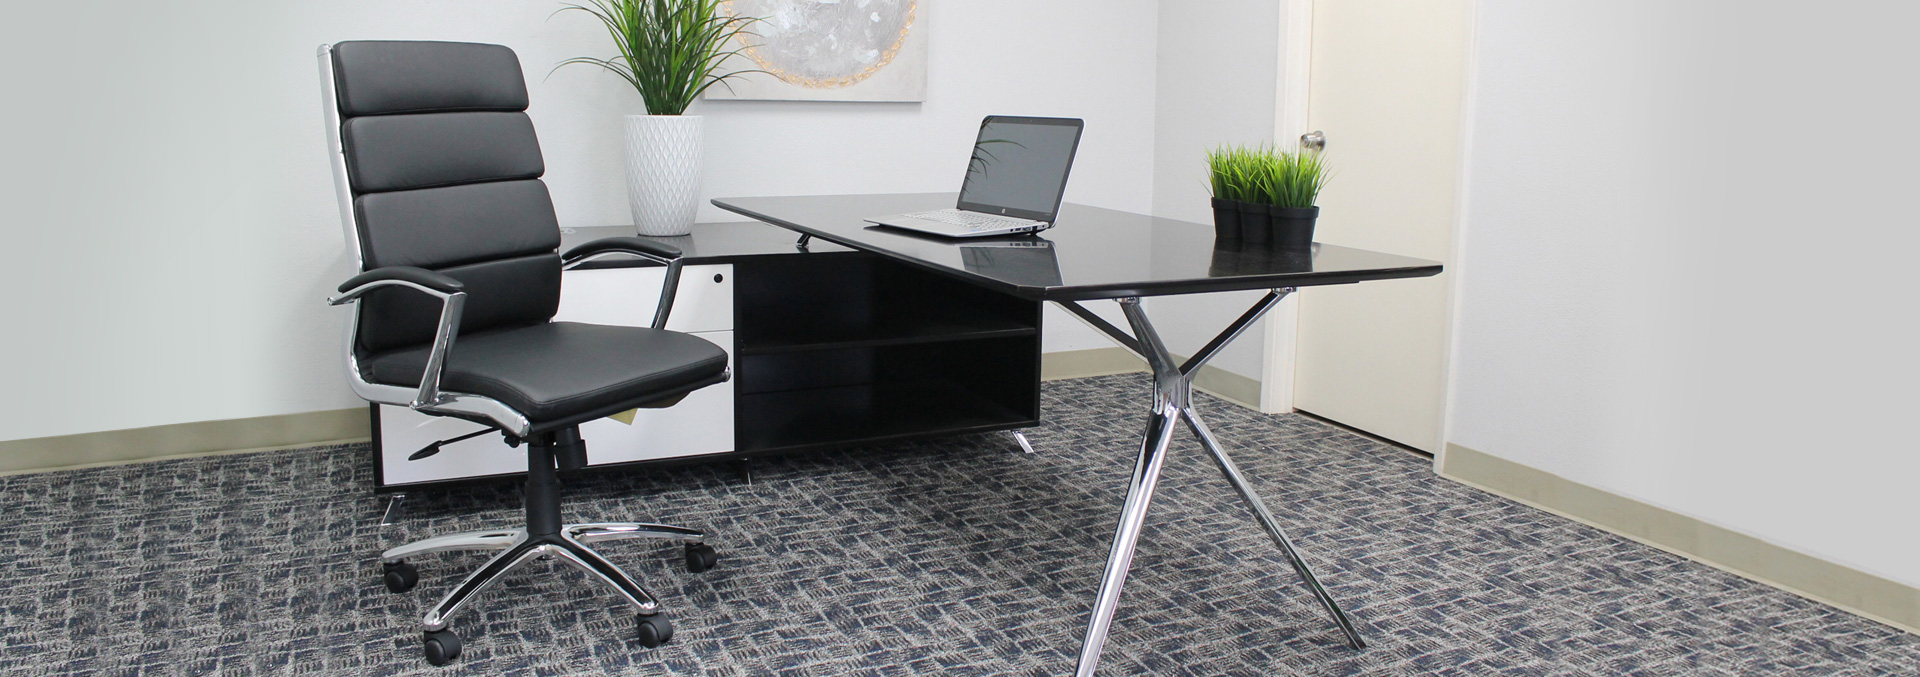 desk or chair safety 1st adaptable high bosschair a norstar company about us contact become dealer